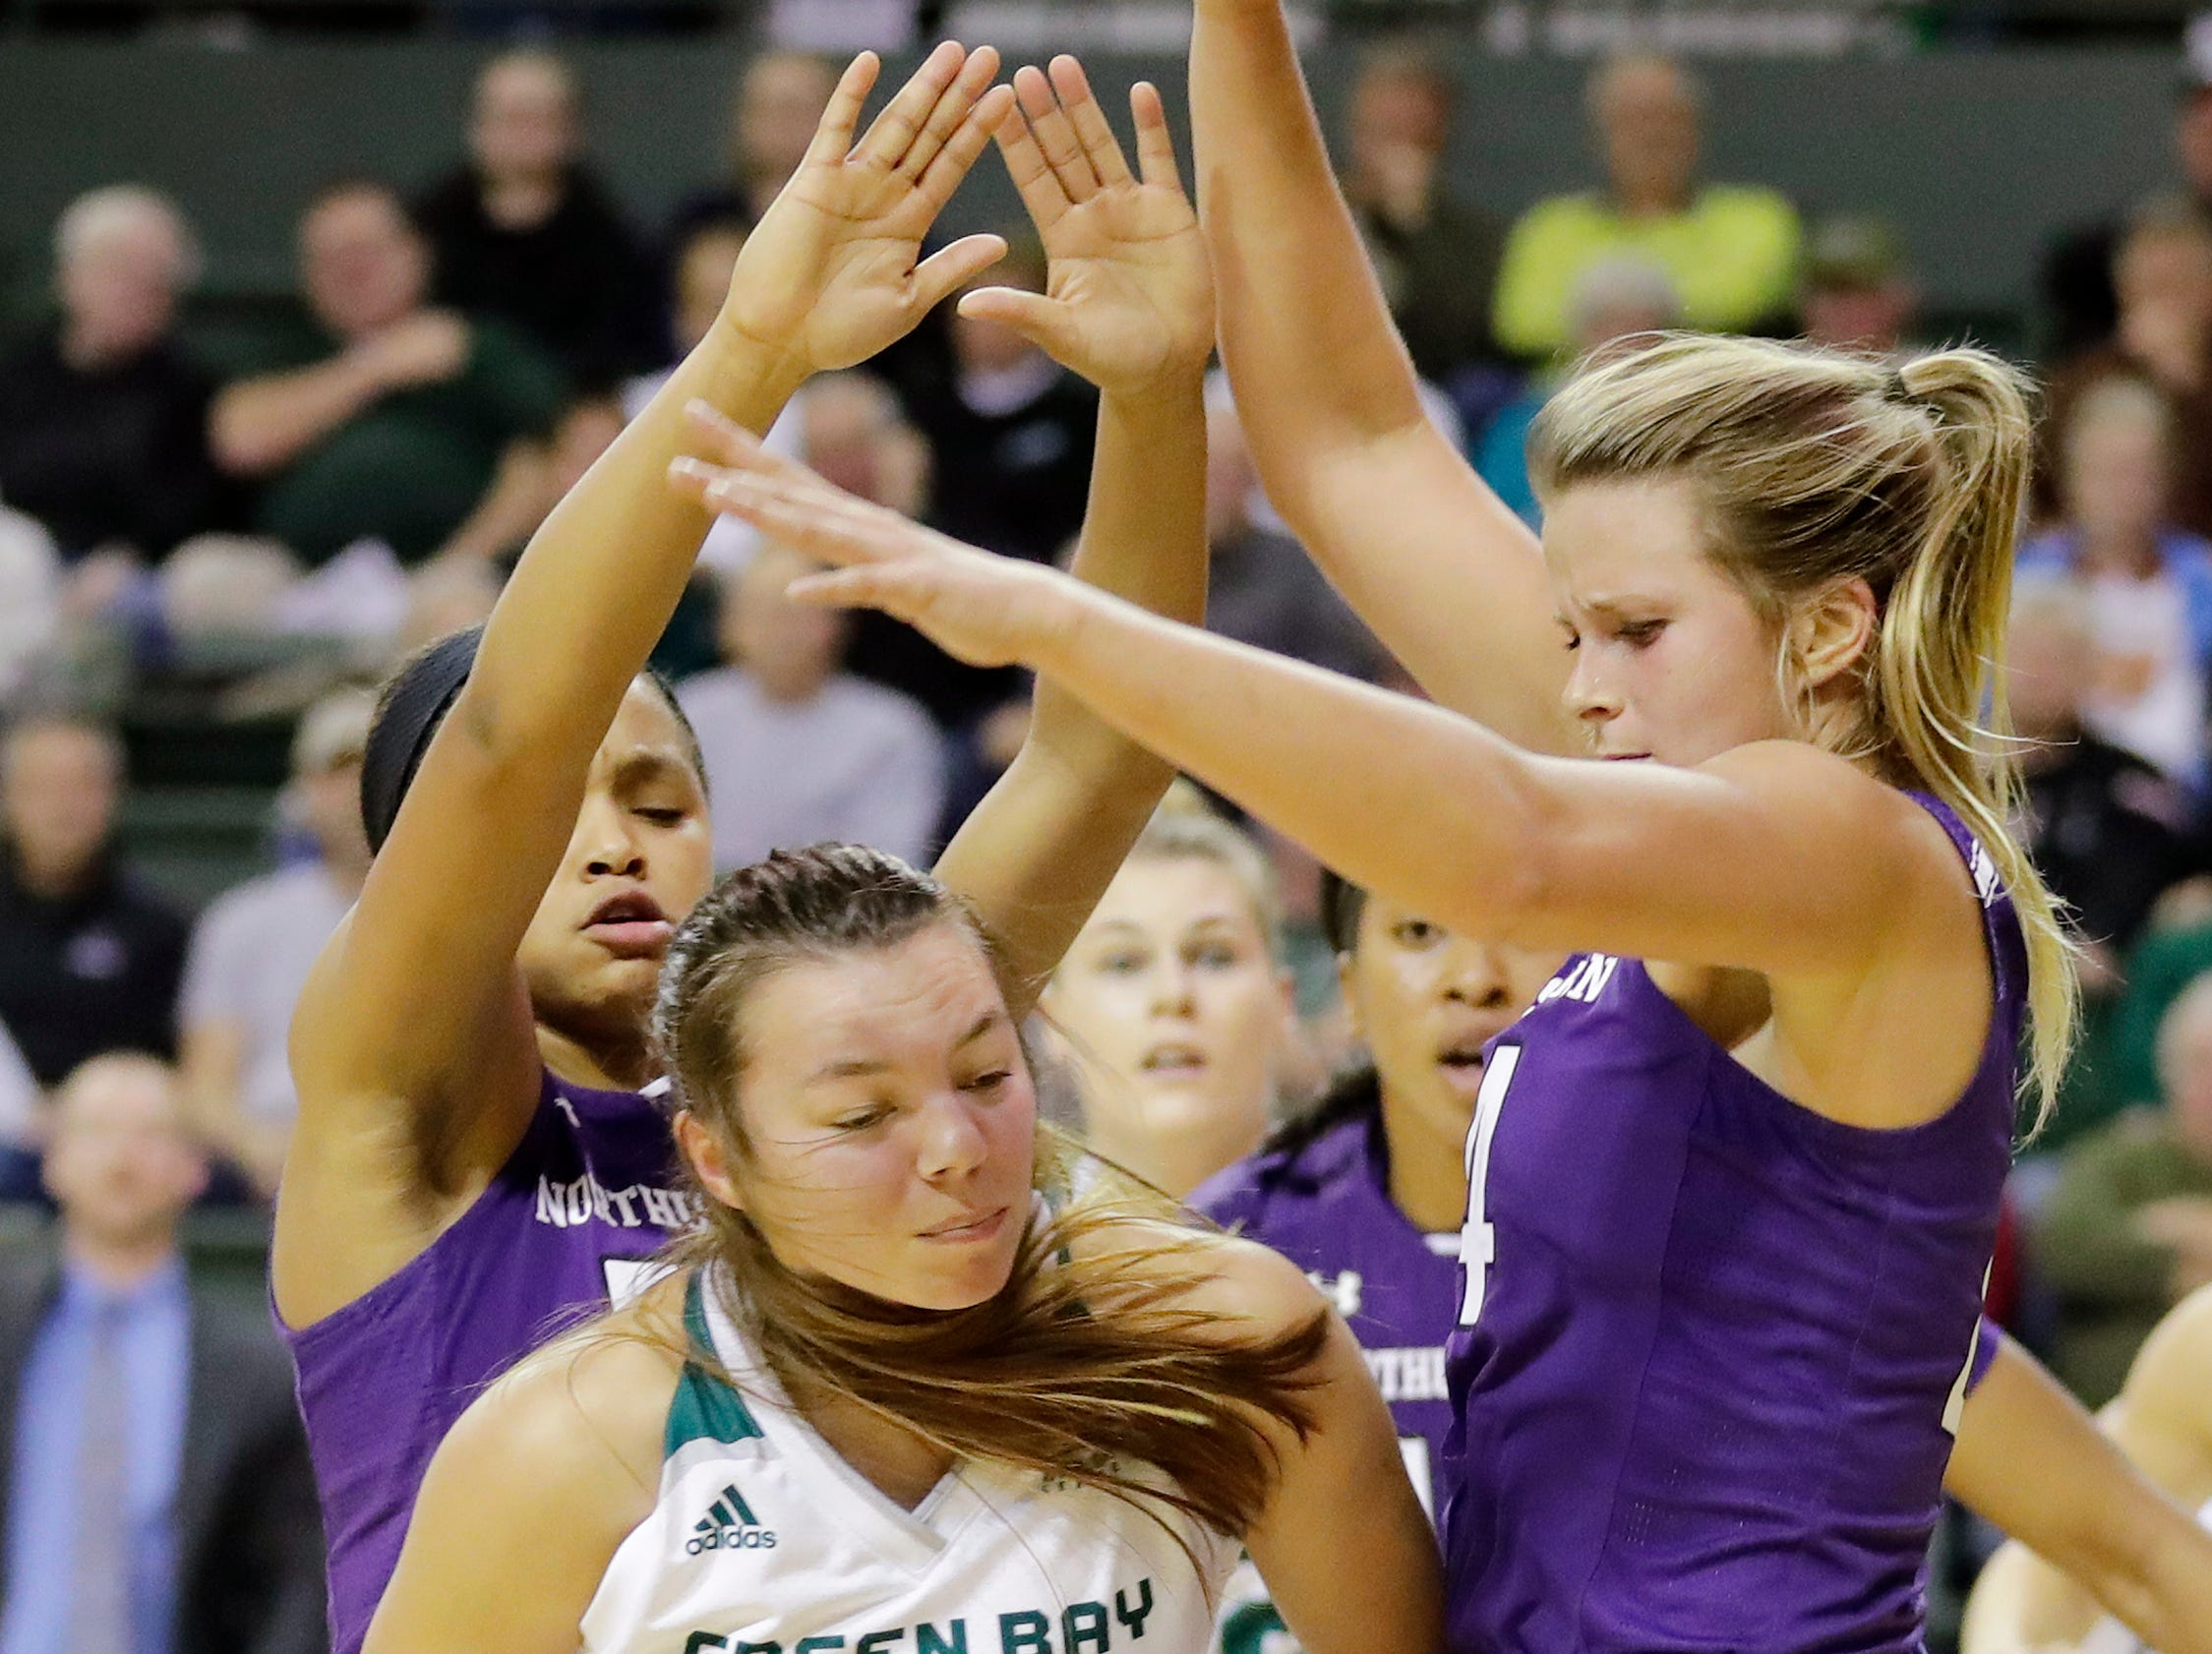 Green Bay Phoenix guard Hailey Oskey (0) draws a foul against the Northwestern Wildcats in a women's NCAA basketball game at the Kress Center on Tuesday, November 6, 2018 in Green Bay, Wis.